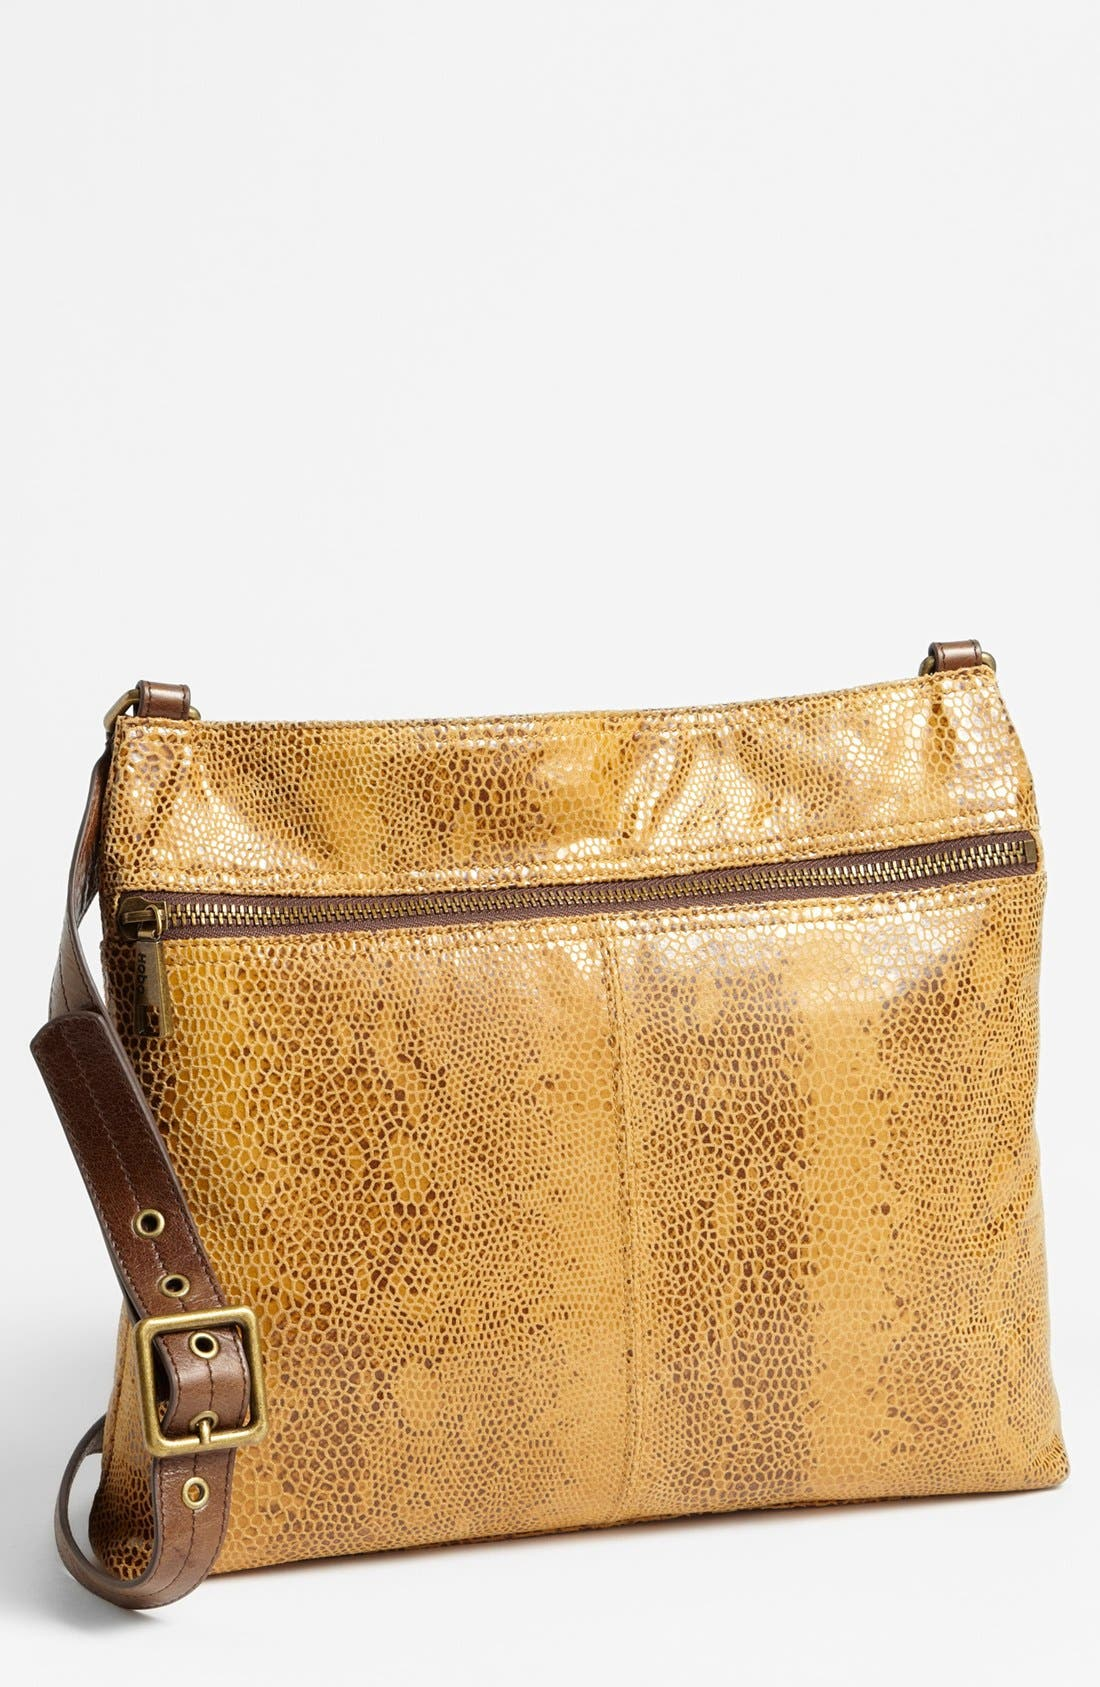 Alternate Image 1 Selected - Hobo 'Lorna' Leather Shoulder Bag